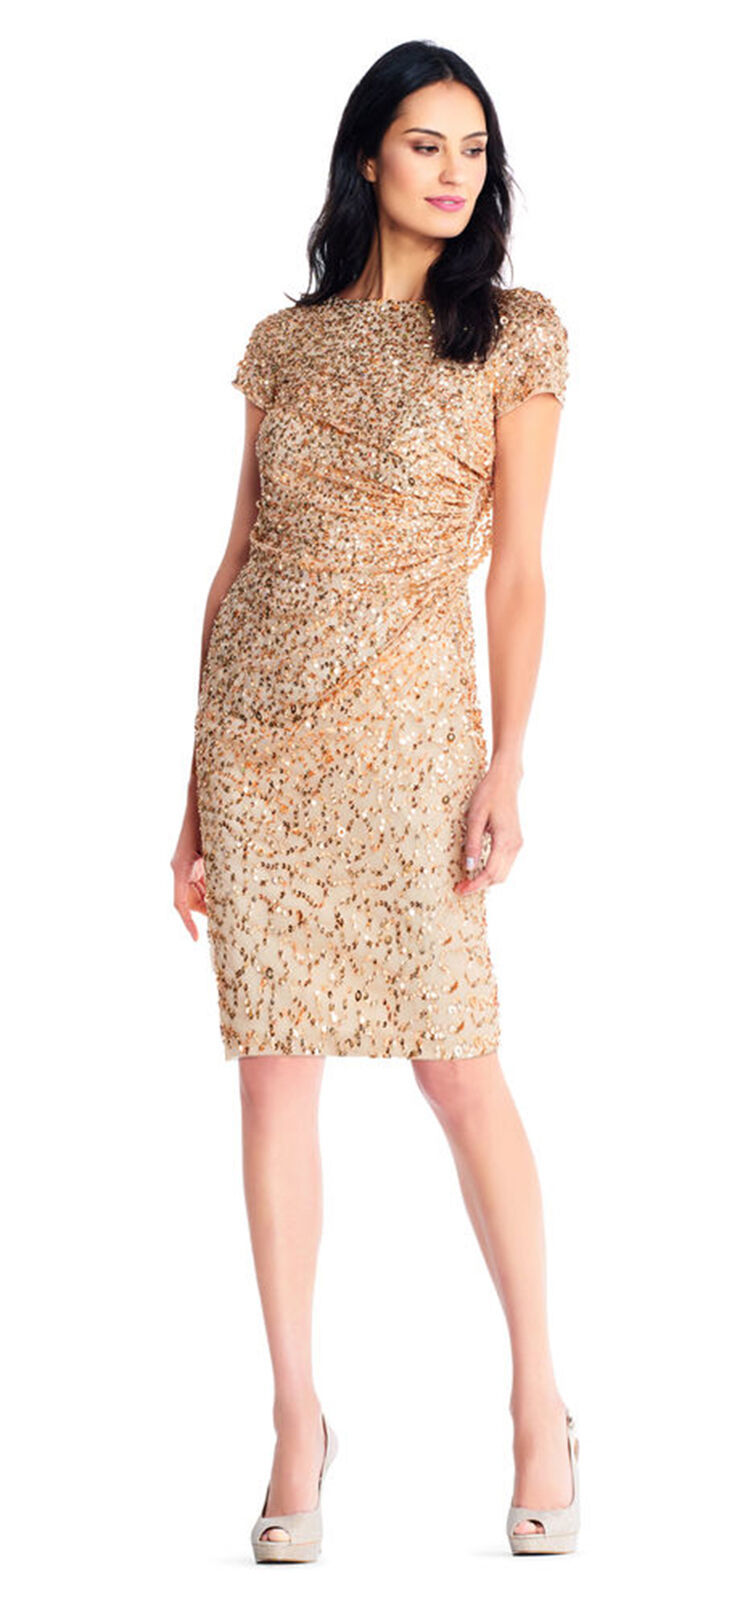 Adrianna Papell Short Sleeve Sequin Beaded Dress Cowl Back, Champagne/Gold, 14P